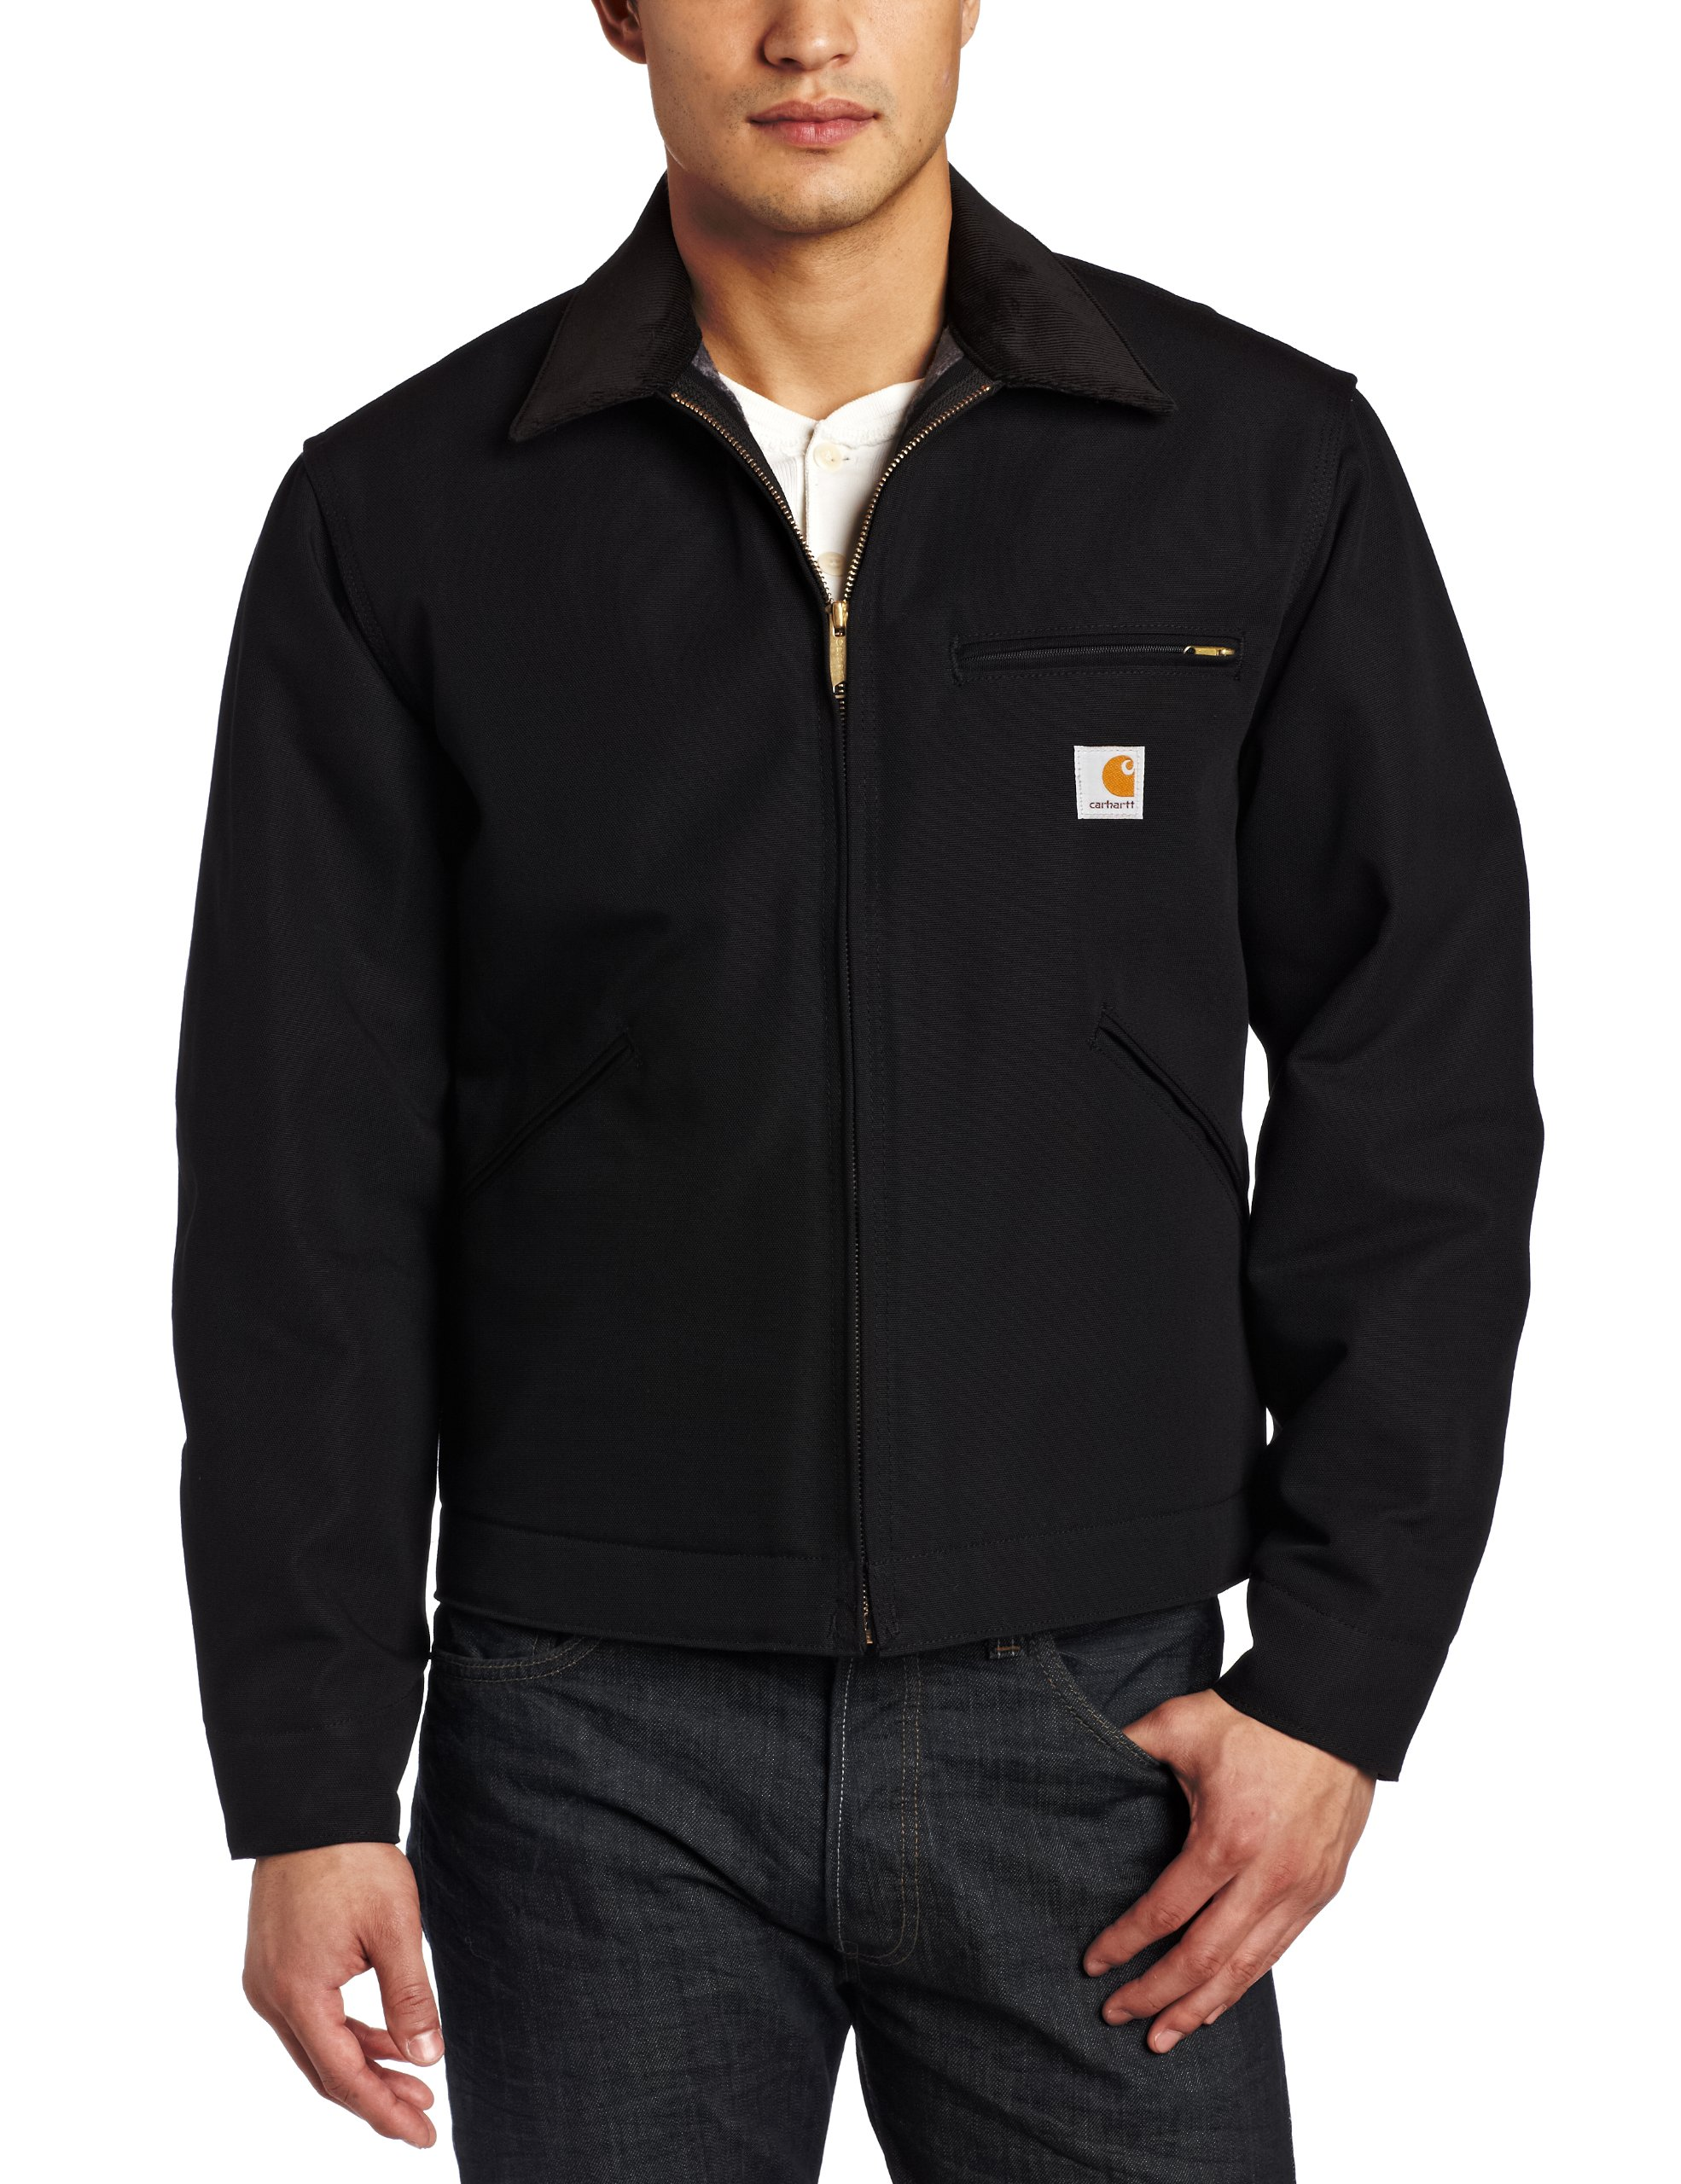 Carhartt Men's Weathered Duck Detroit Jacket J001,Black,Medium